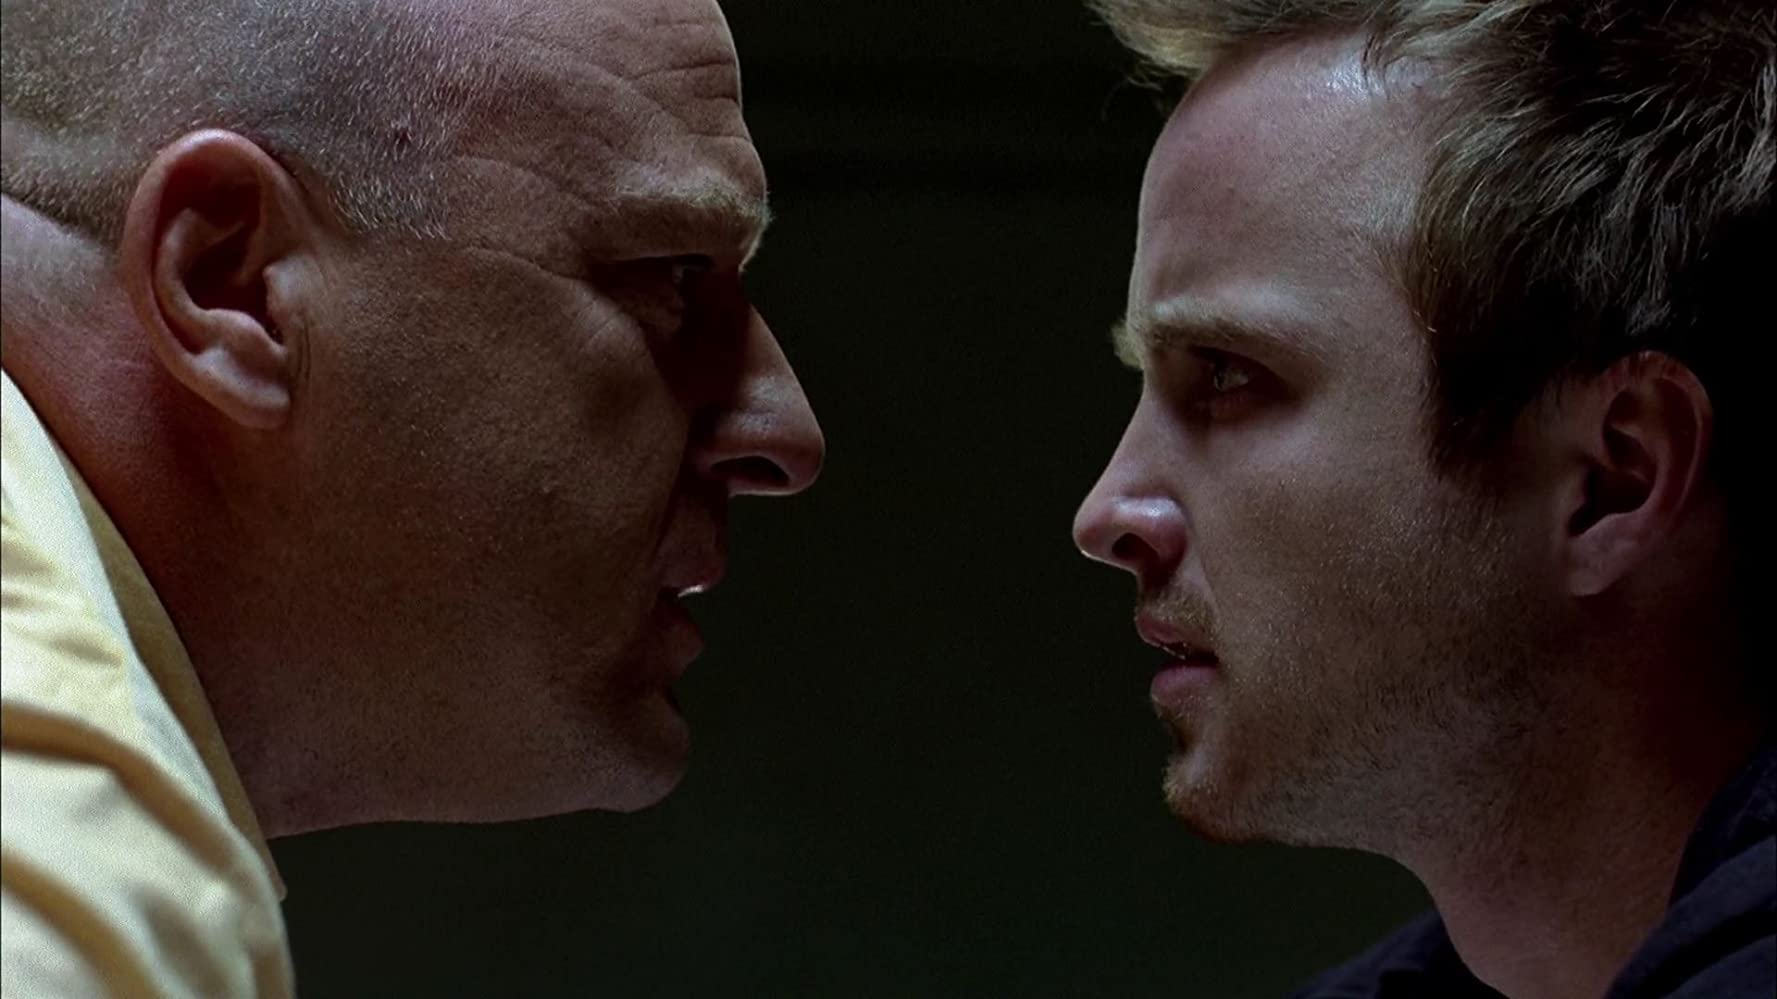 Dean Norris and Aaron Paul in Breaking Bad (2008)